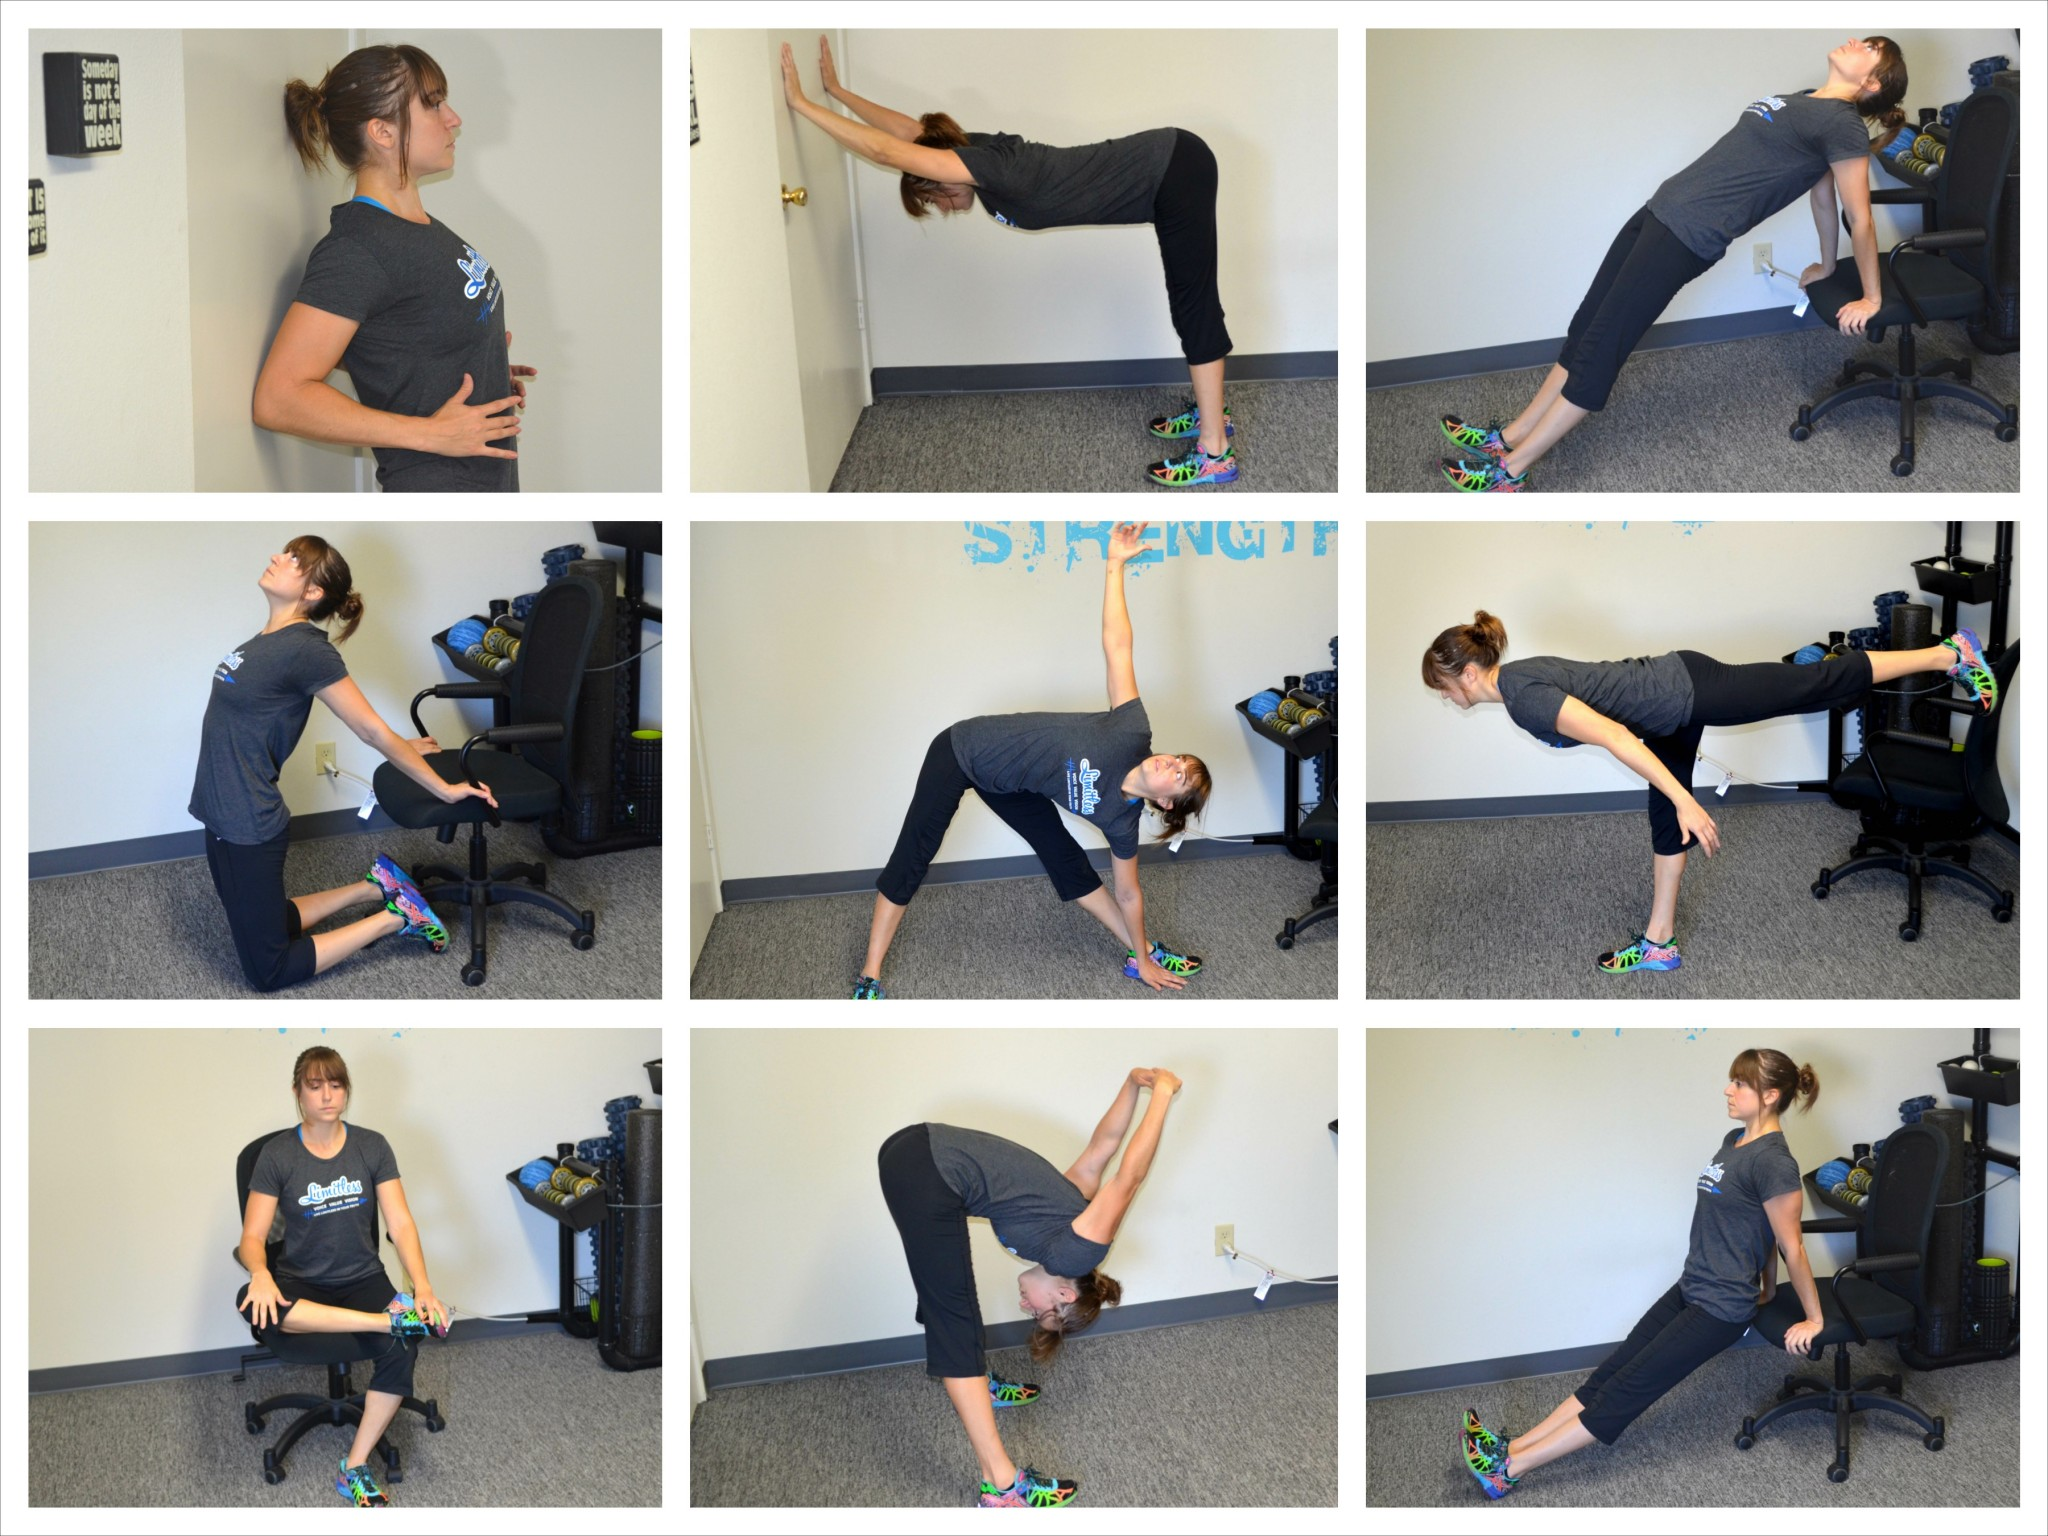 Desk Exercises 10 Isometric Moves And Stretches To Do At